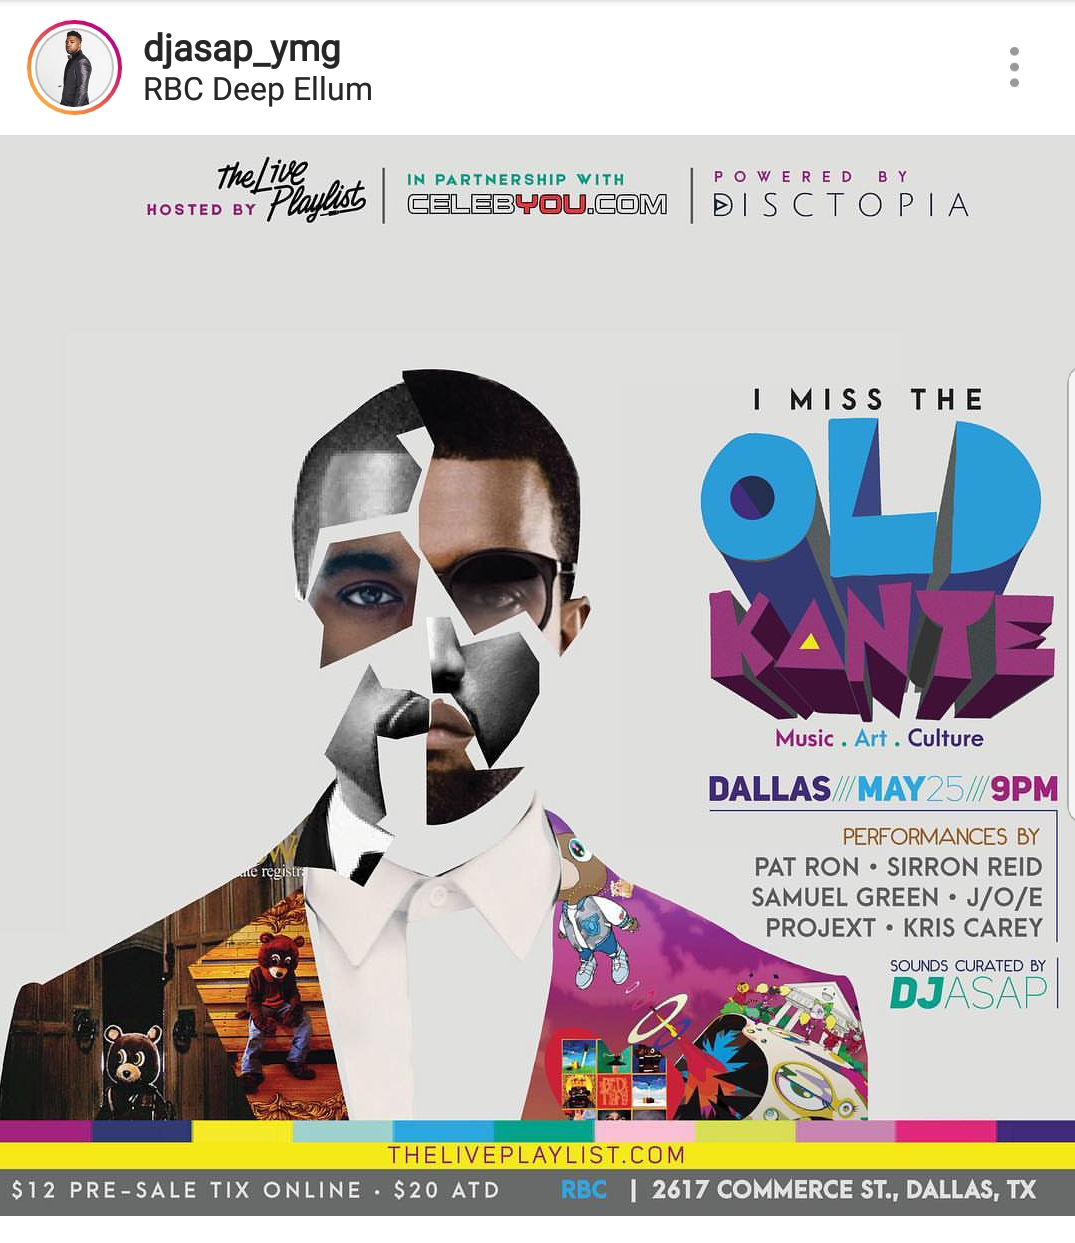 DALLAS Artists Join Together Tonight to Bring Back the OLD Kanye West